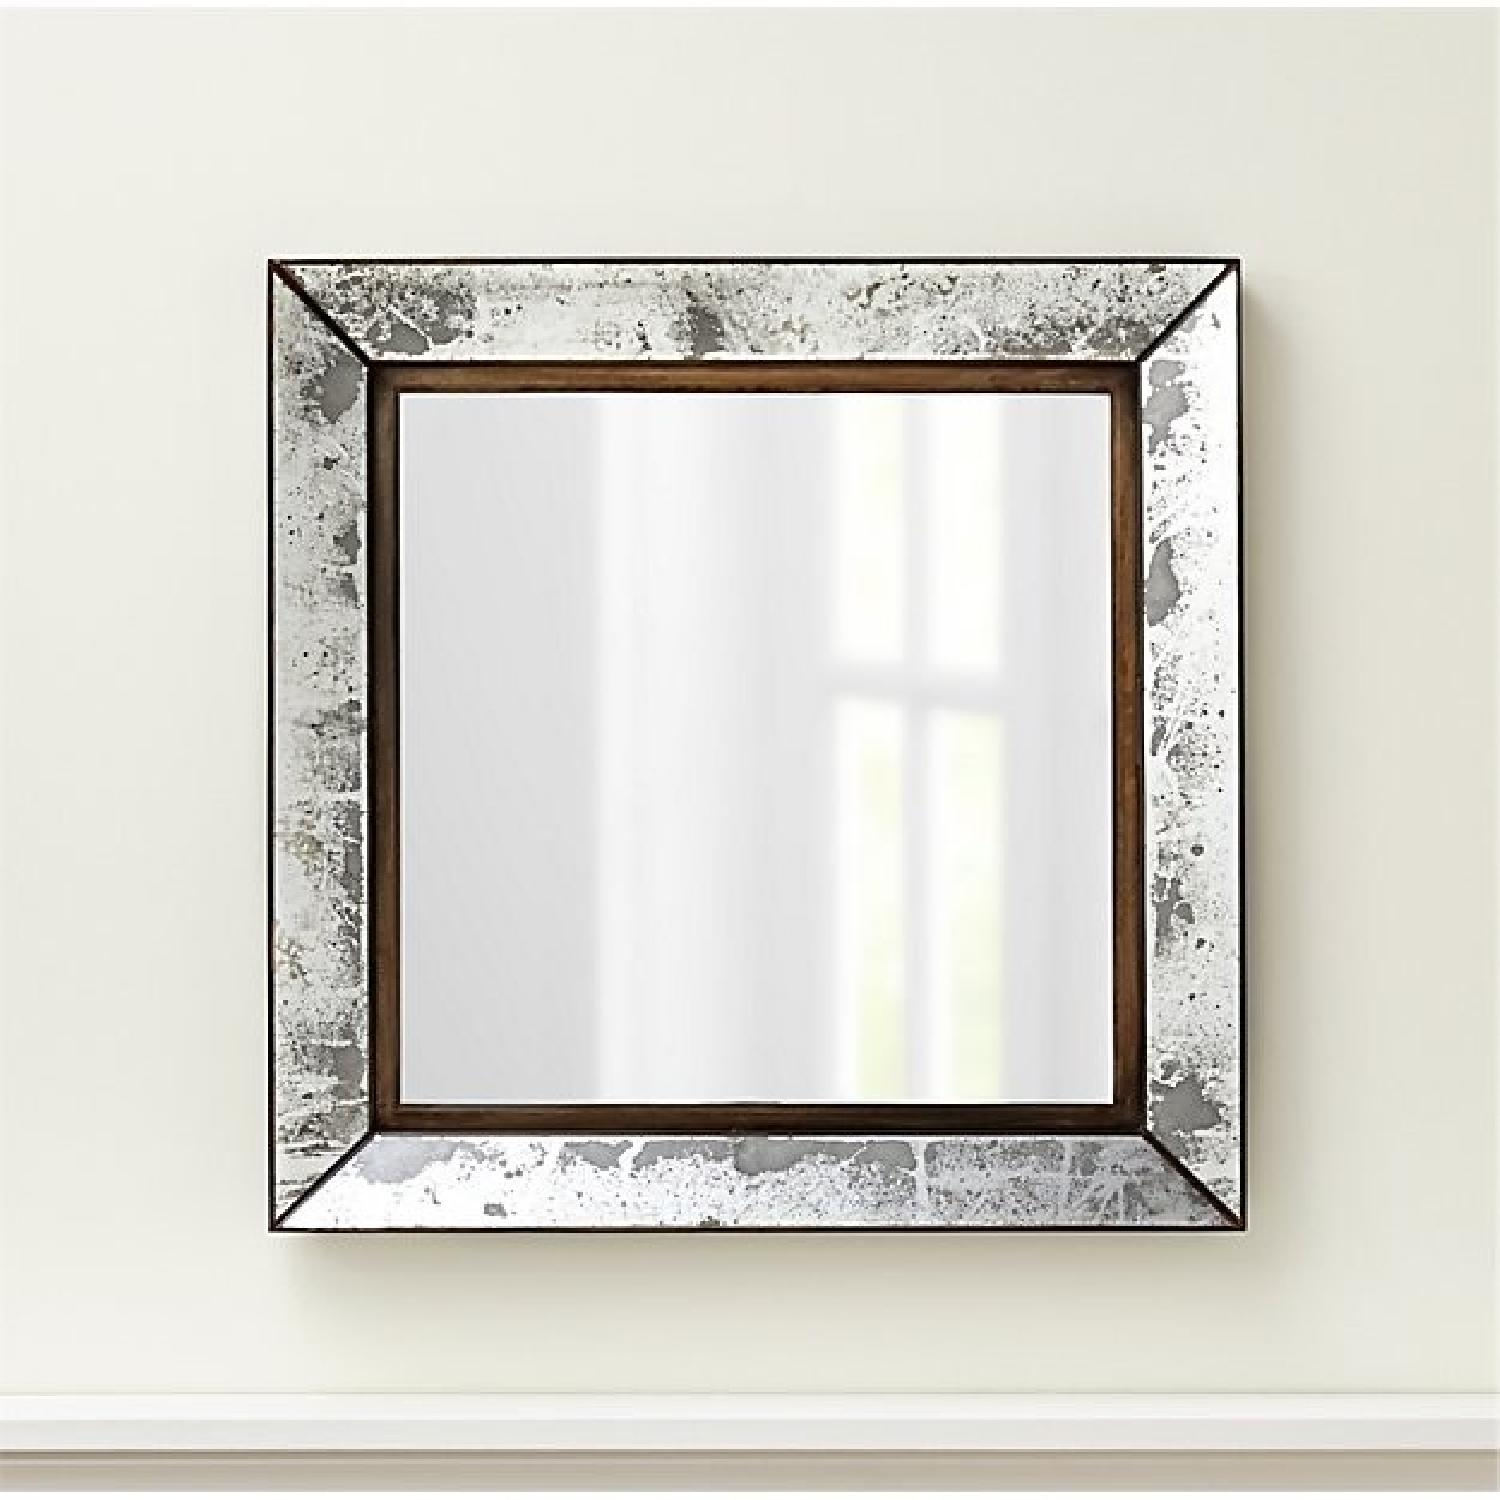 Crate & Barrel Dubois Large Square Wall Mirror-0